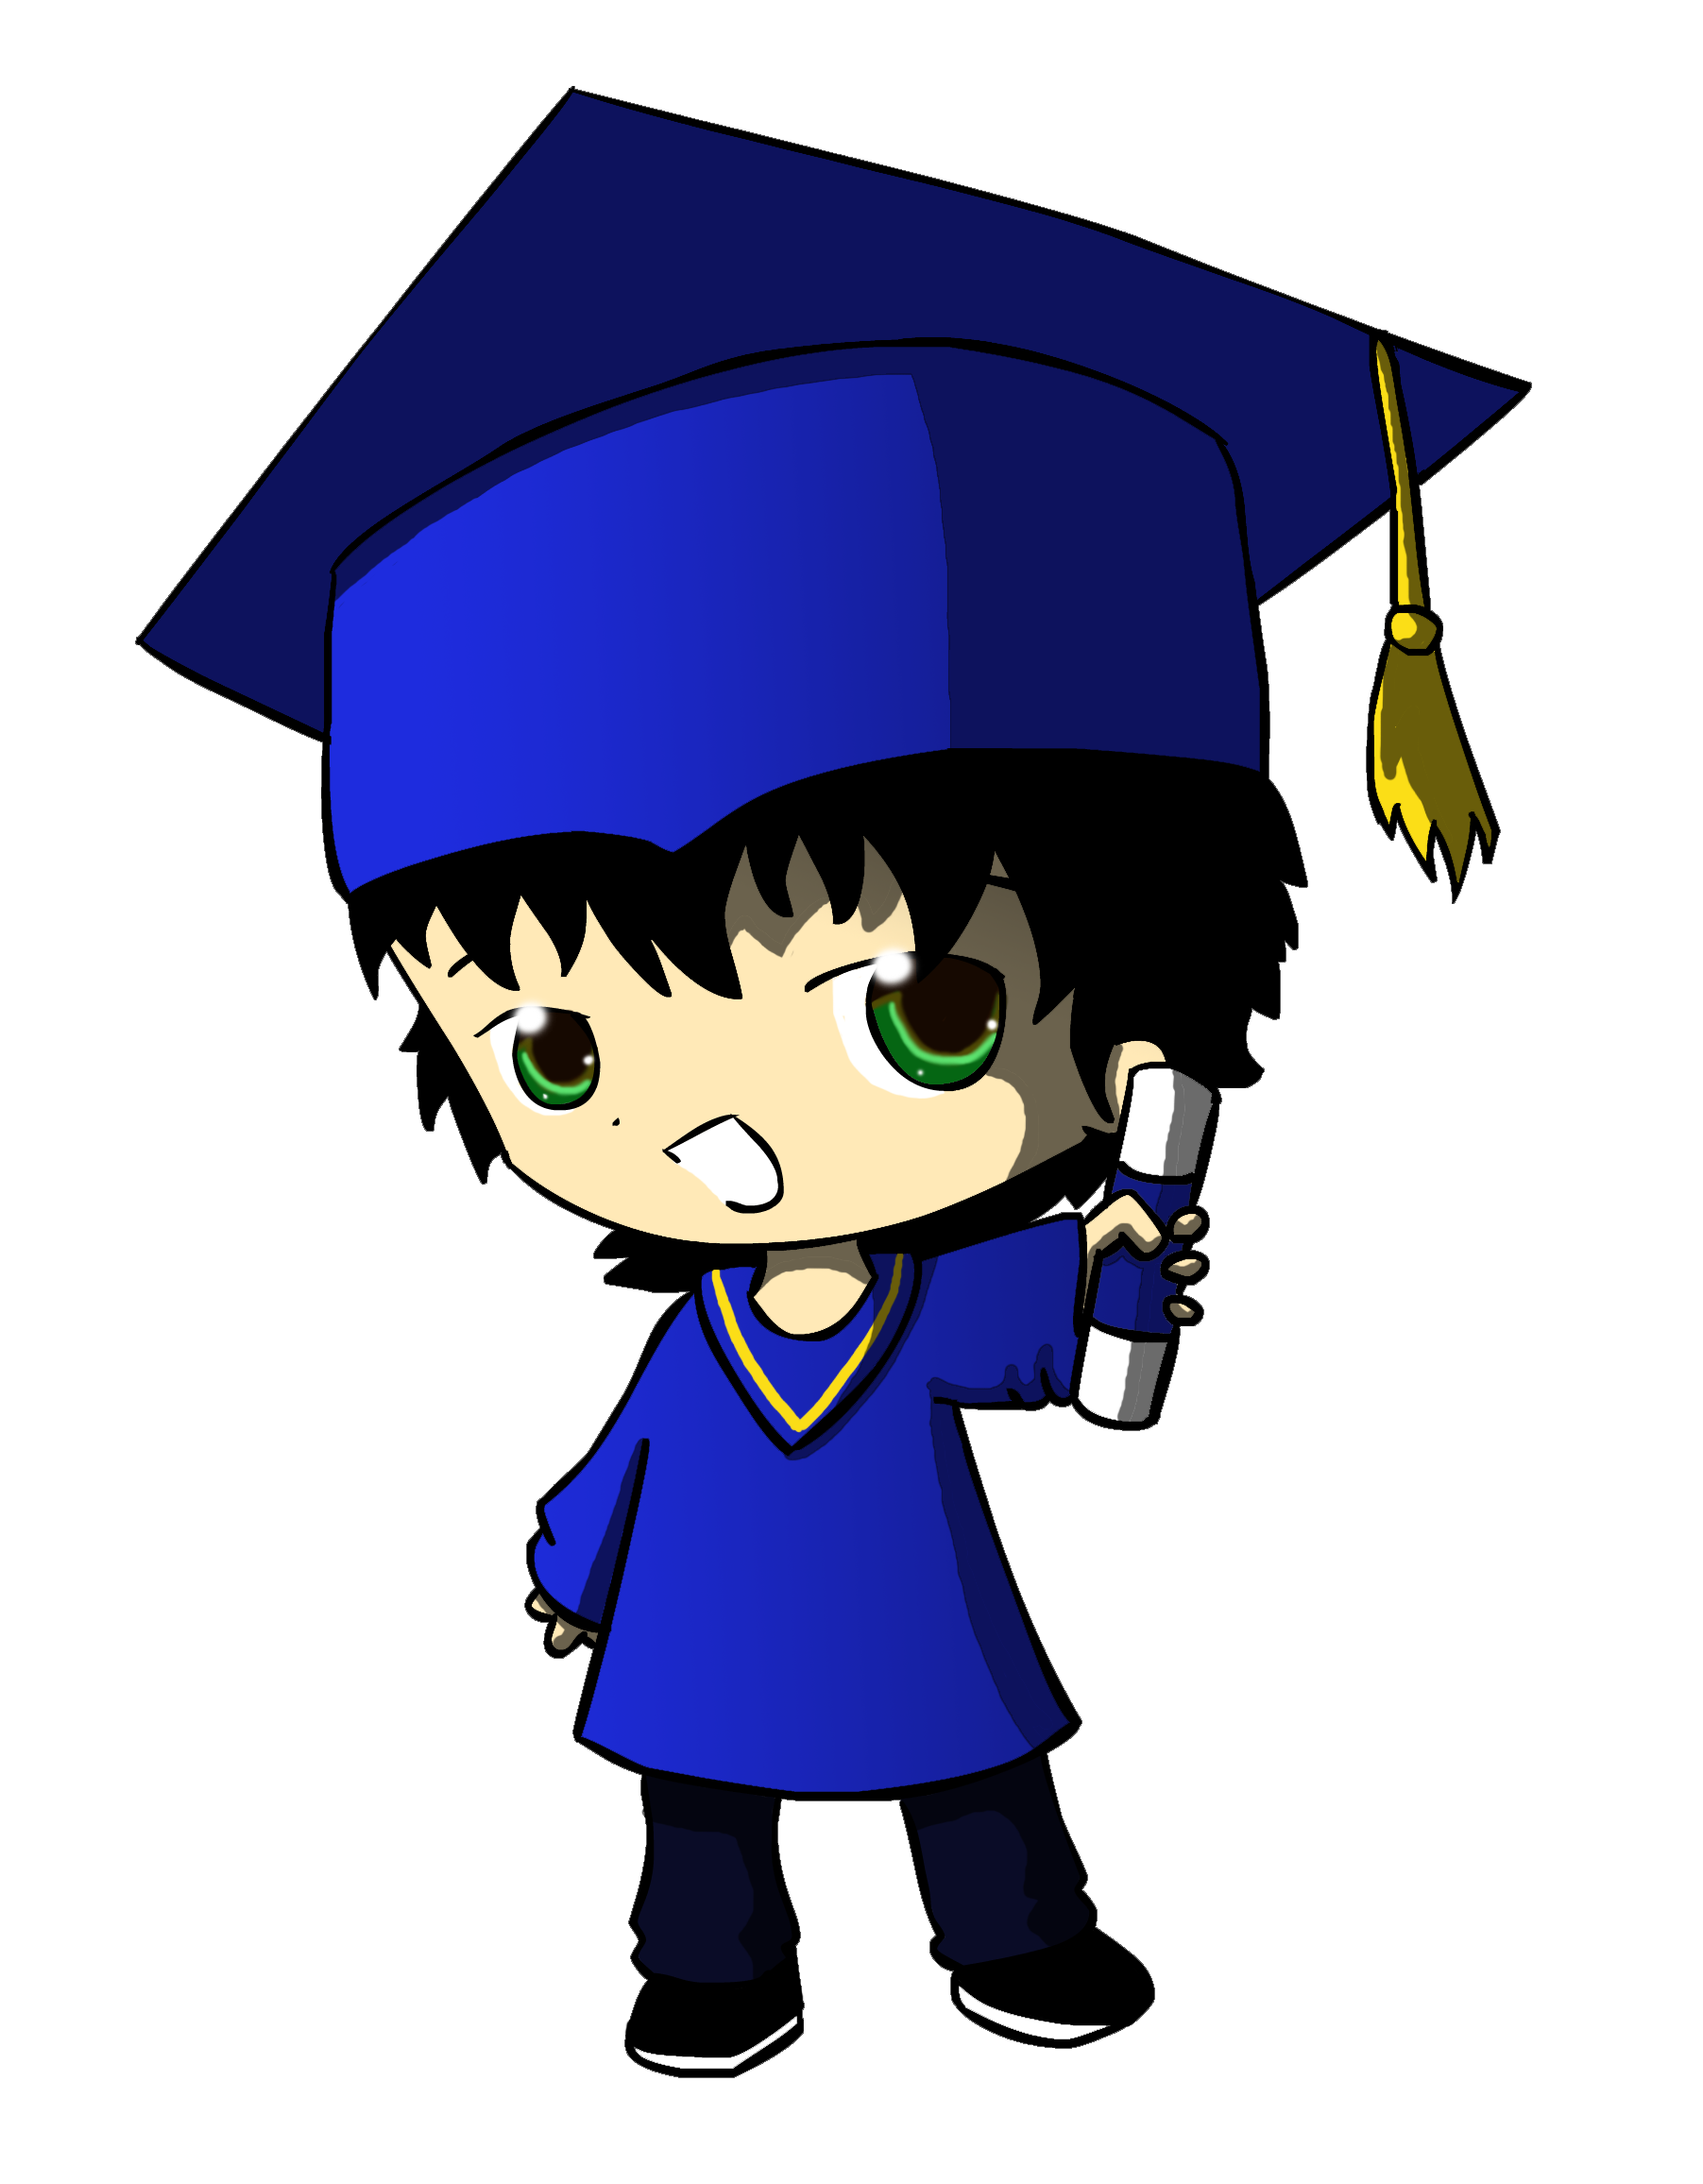 Graduates silhouette at getdrawings. Future clipart grad